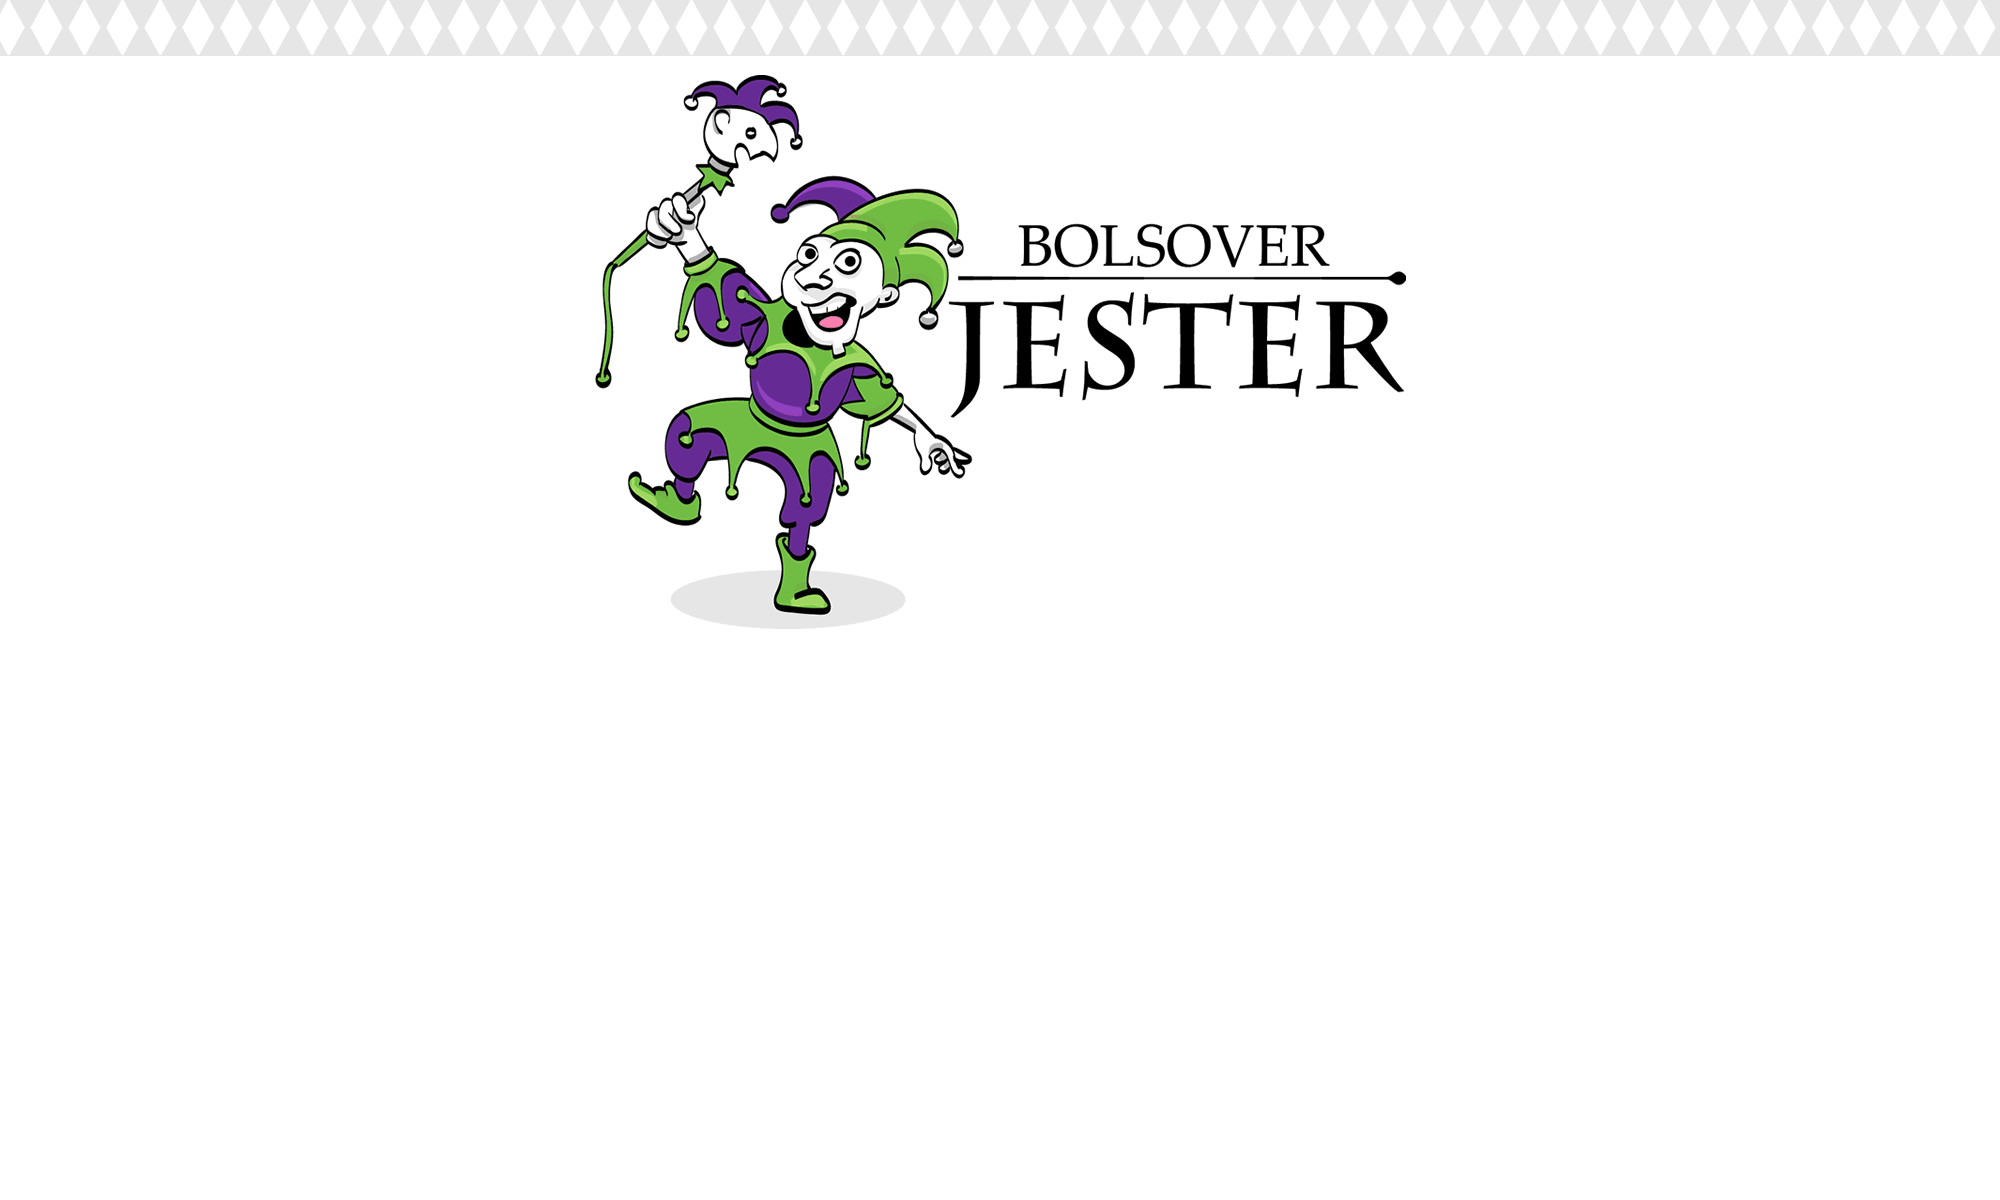 The Bolsover Jester